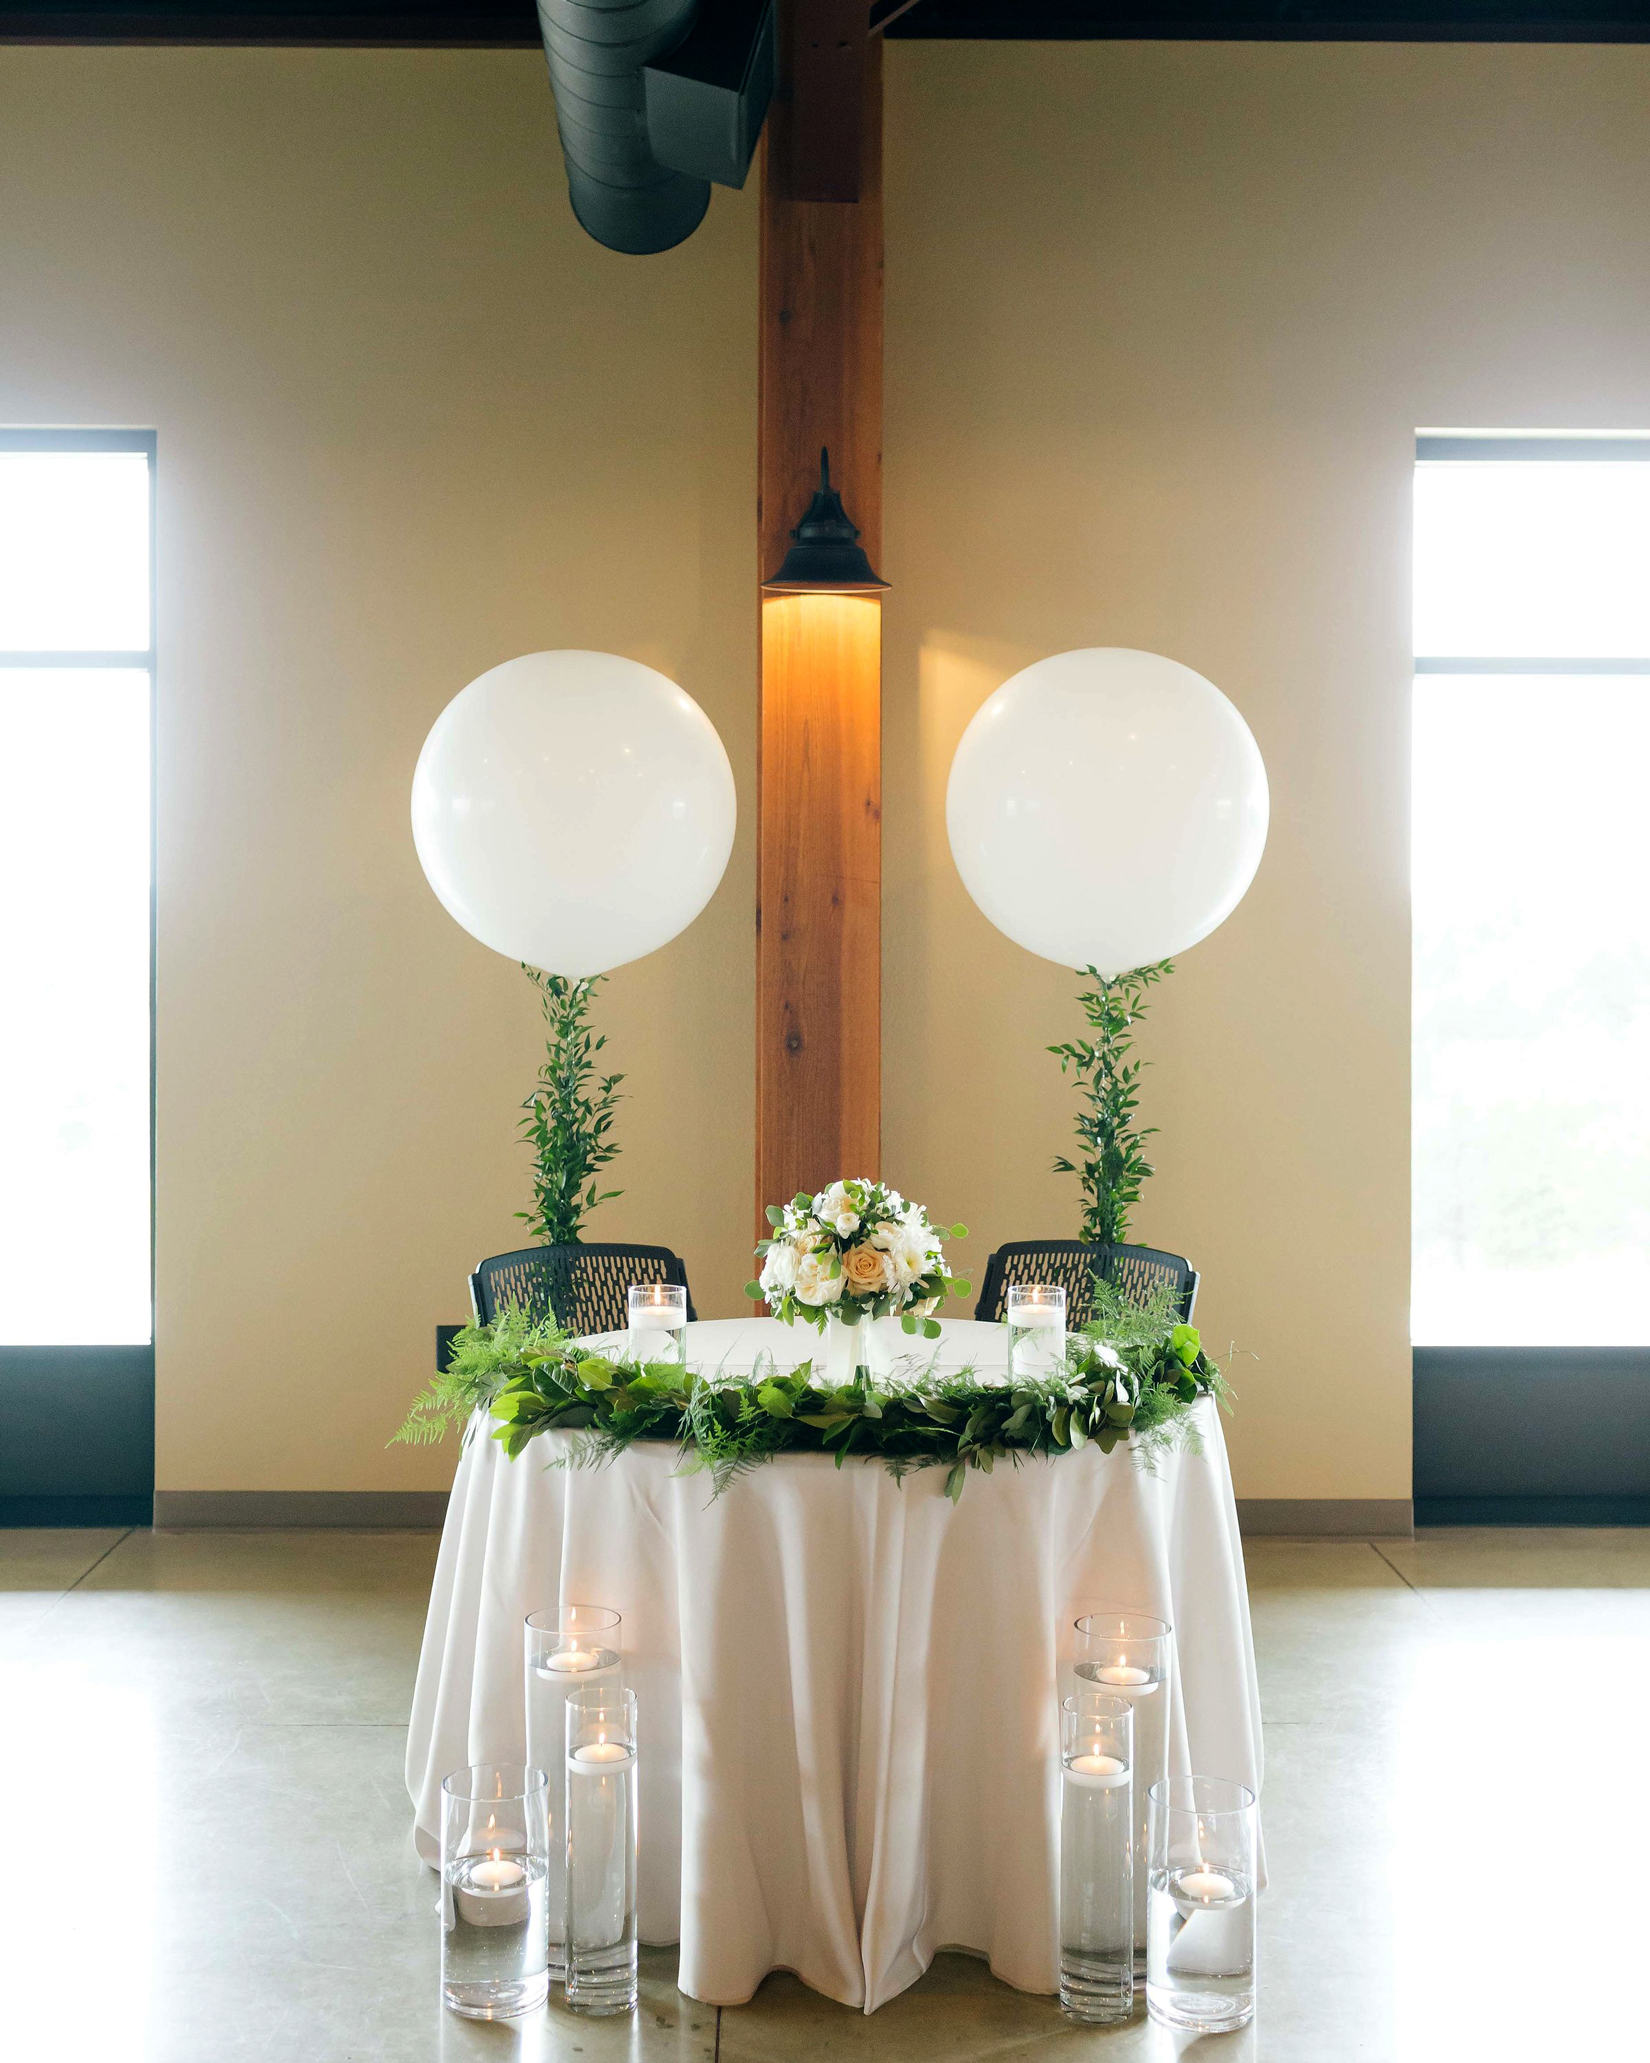 sweetheart table with balloon display